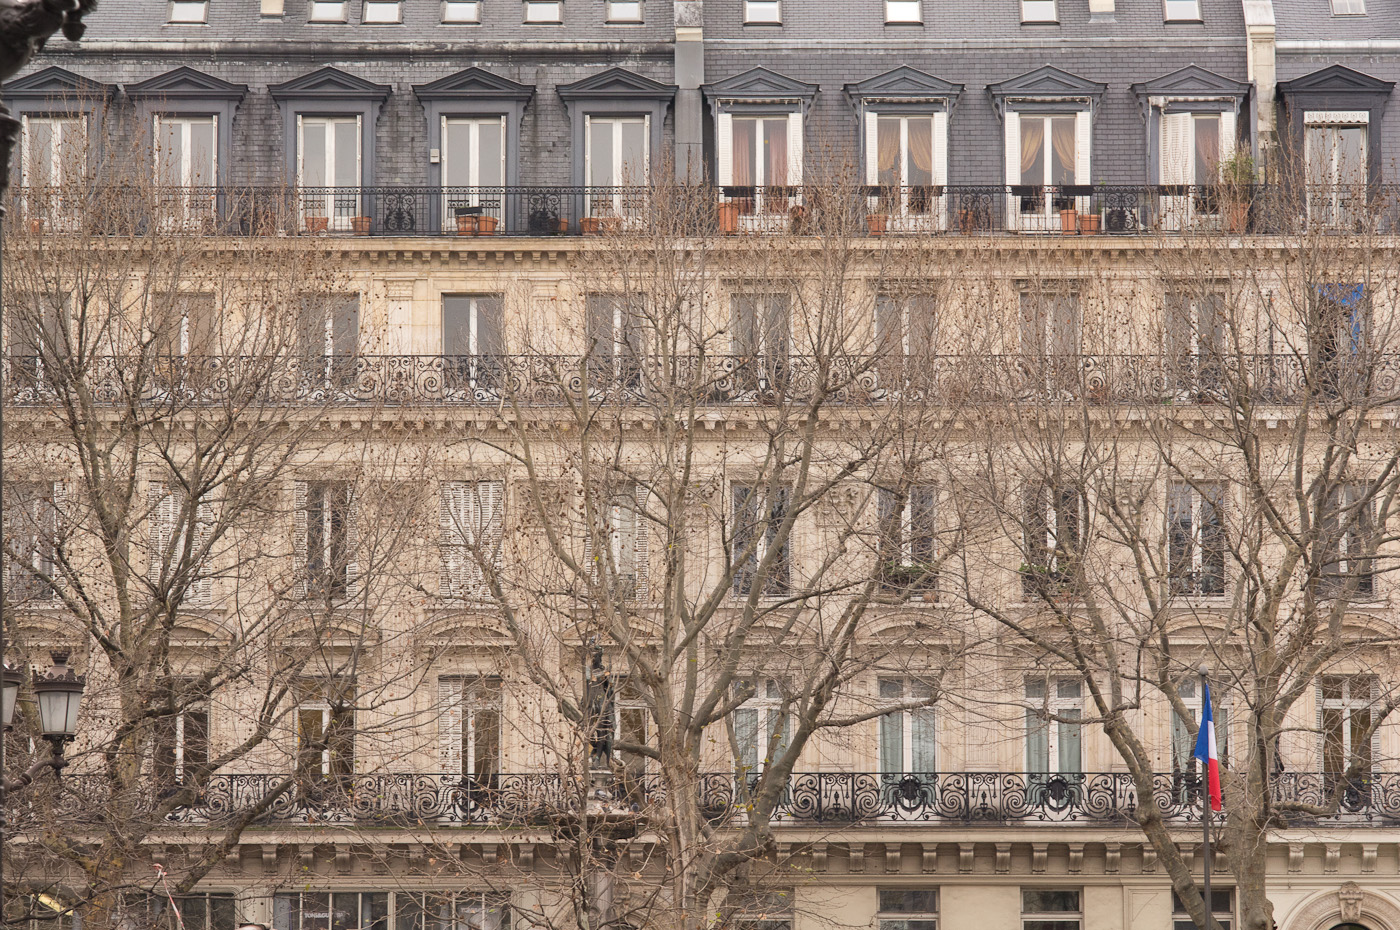 A posh building in central Paris